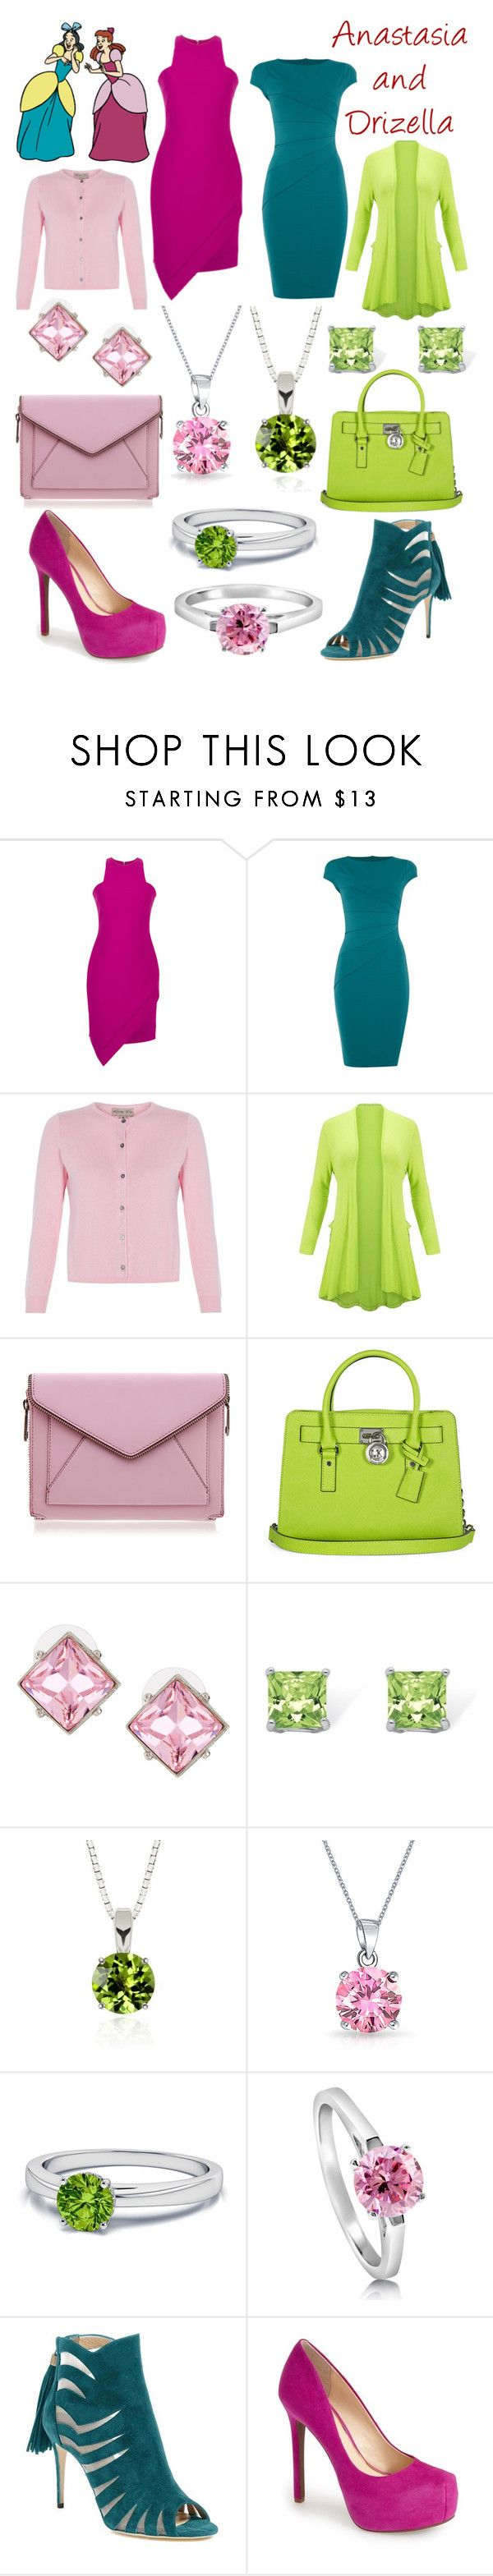 """Anastasia and Drizella Disneybound"" by msmith22 ❤ liked on Polyvore featuring Elizabeth and James, Jessica Wright, Rebecca Minkoff, Michael Kors, Kenneth Jay Lane, Palm Beach Jewelry, Belk & Co., Bling Jewelry, BERRICLE and Paul Andrew"